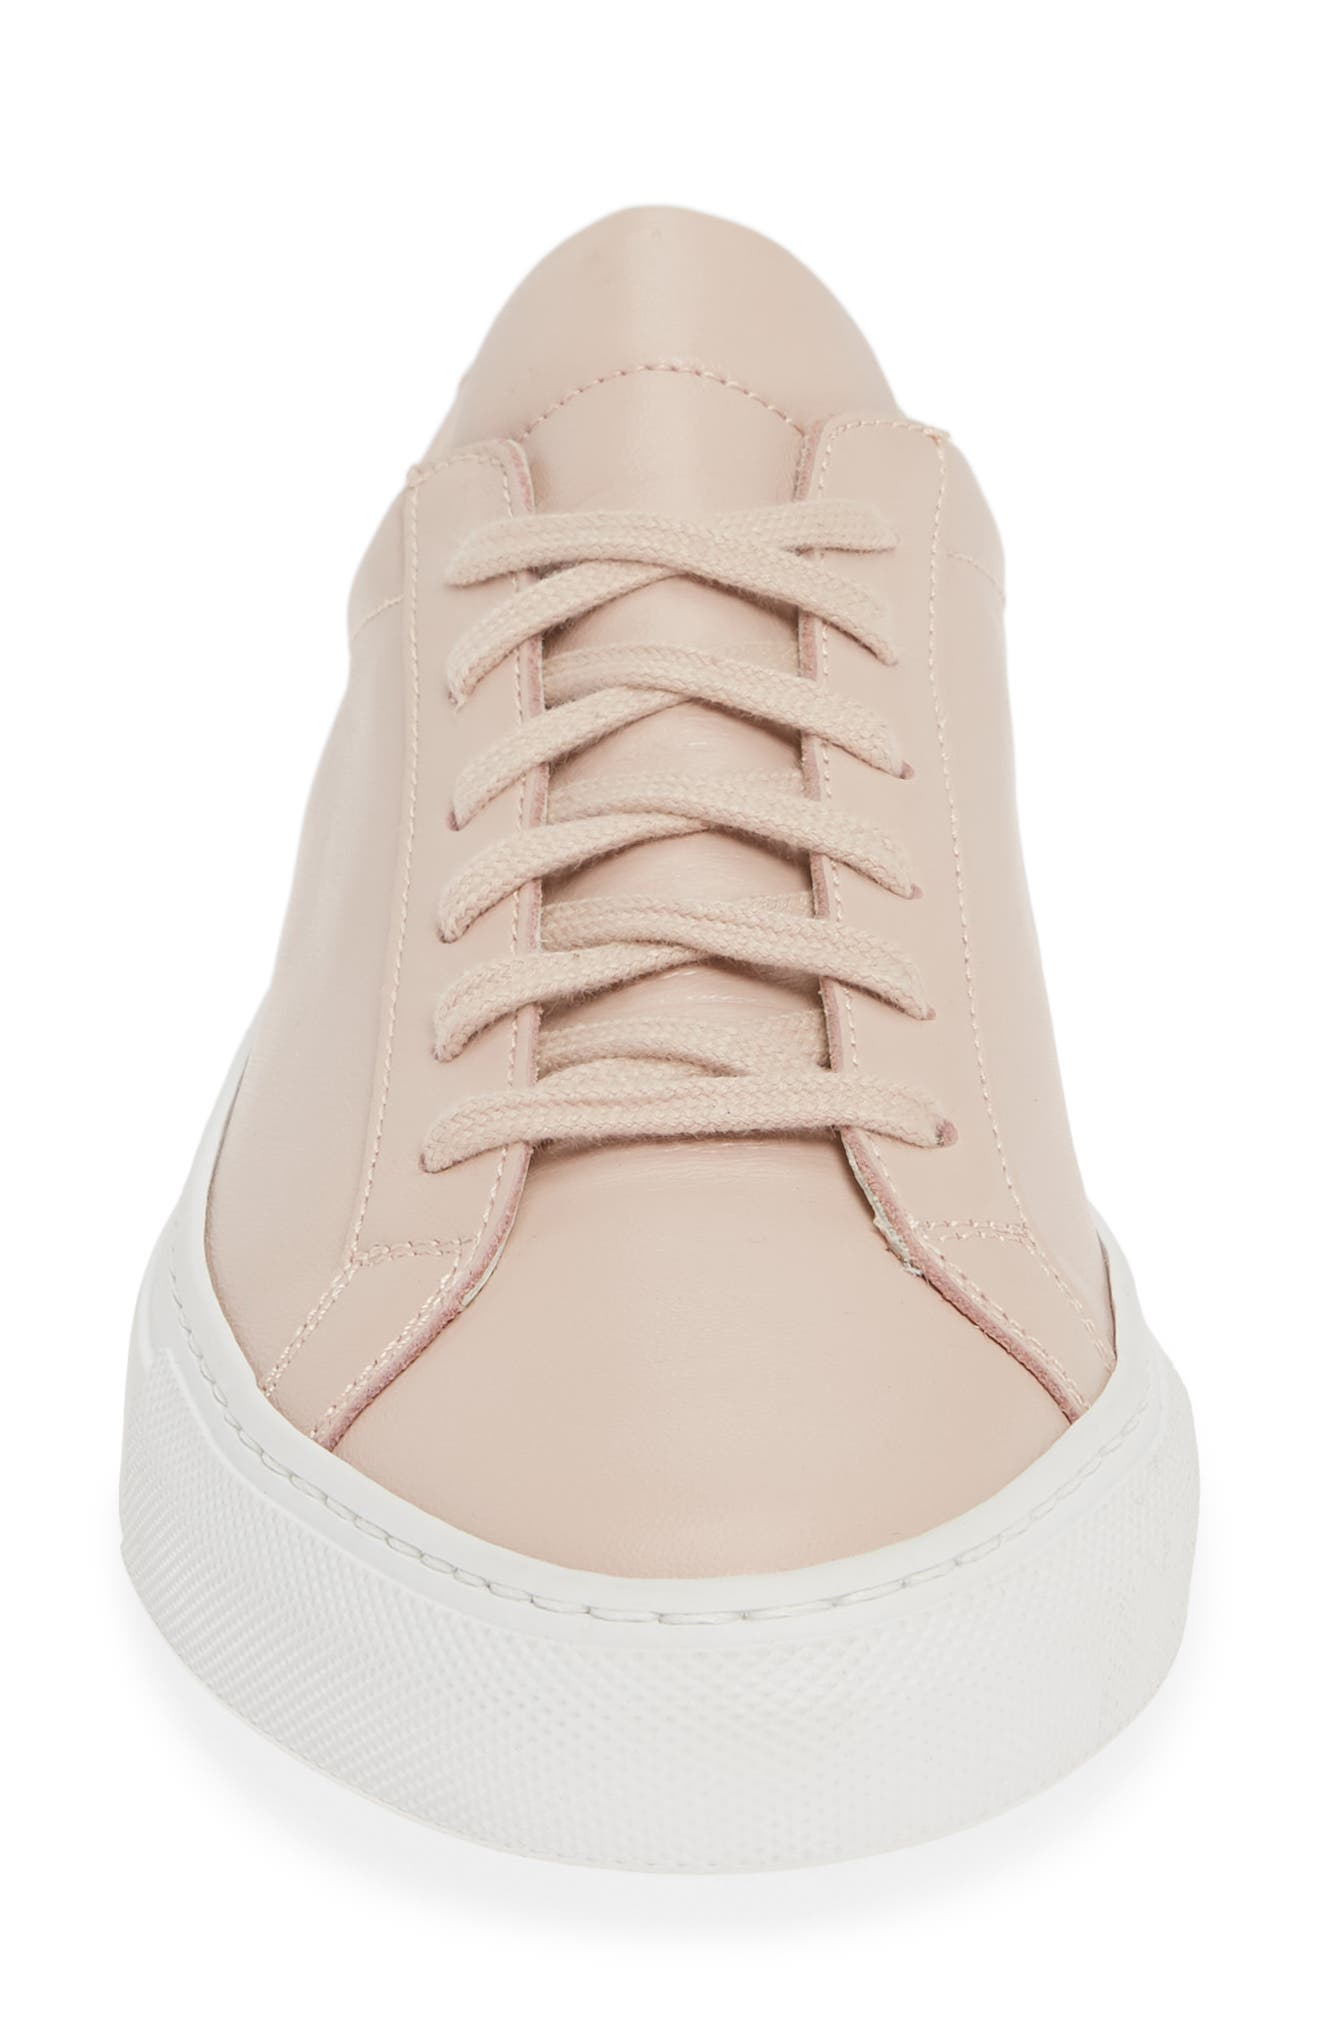 COMMON PROJECTS,                             Original Achilles Sneaker,                             Alternate thumbnail 4, color,                             BLUSH